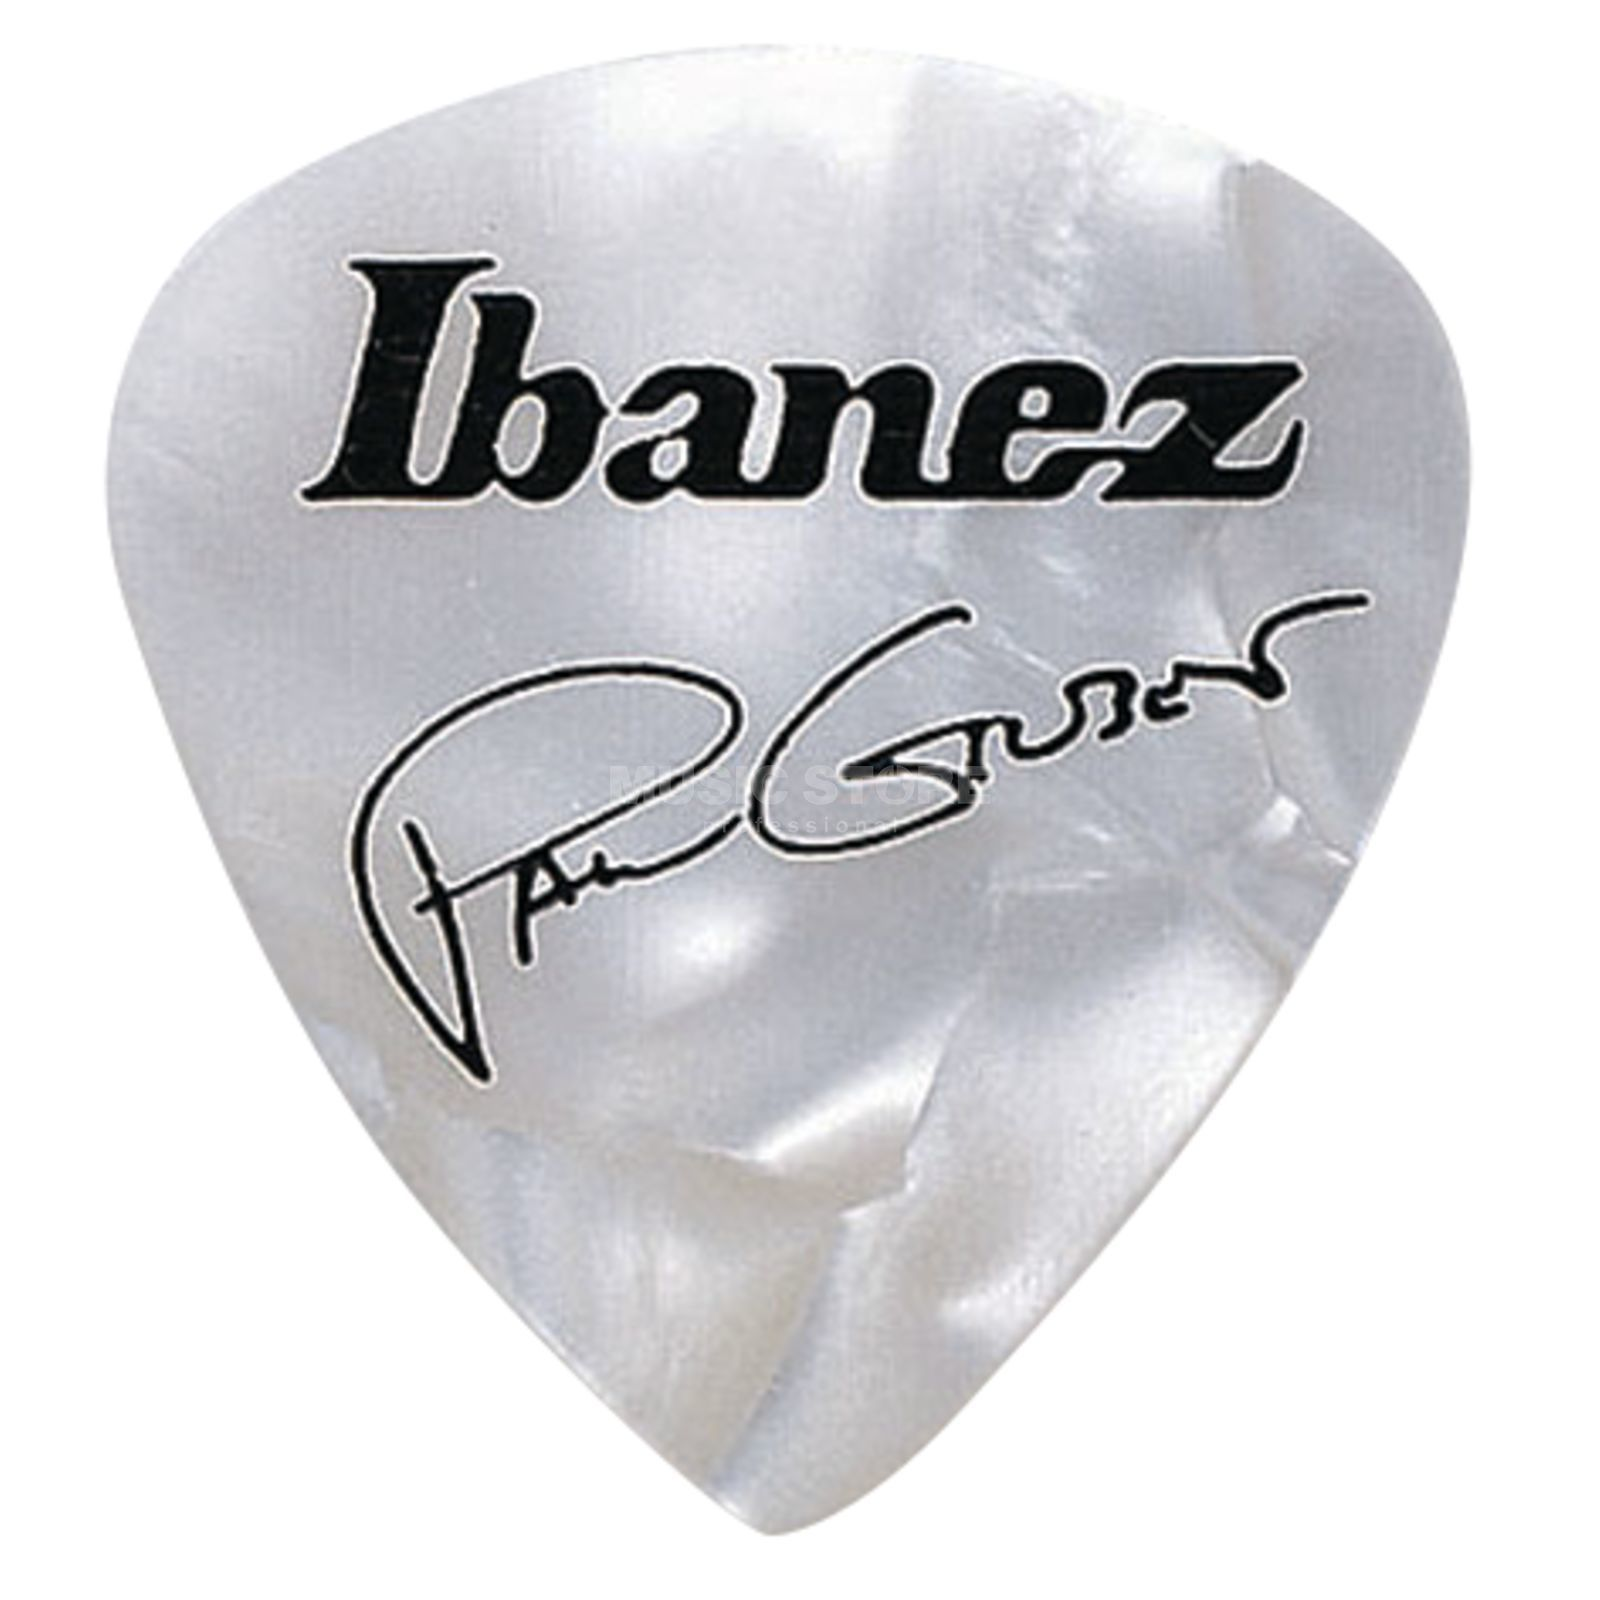 Ibanez Plektrum B1000PG-PW,6er-Set Paul Gilbert, sign.pearlwhite Produktbild